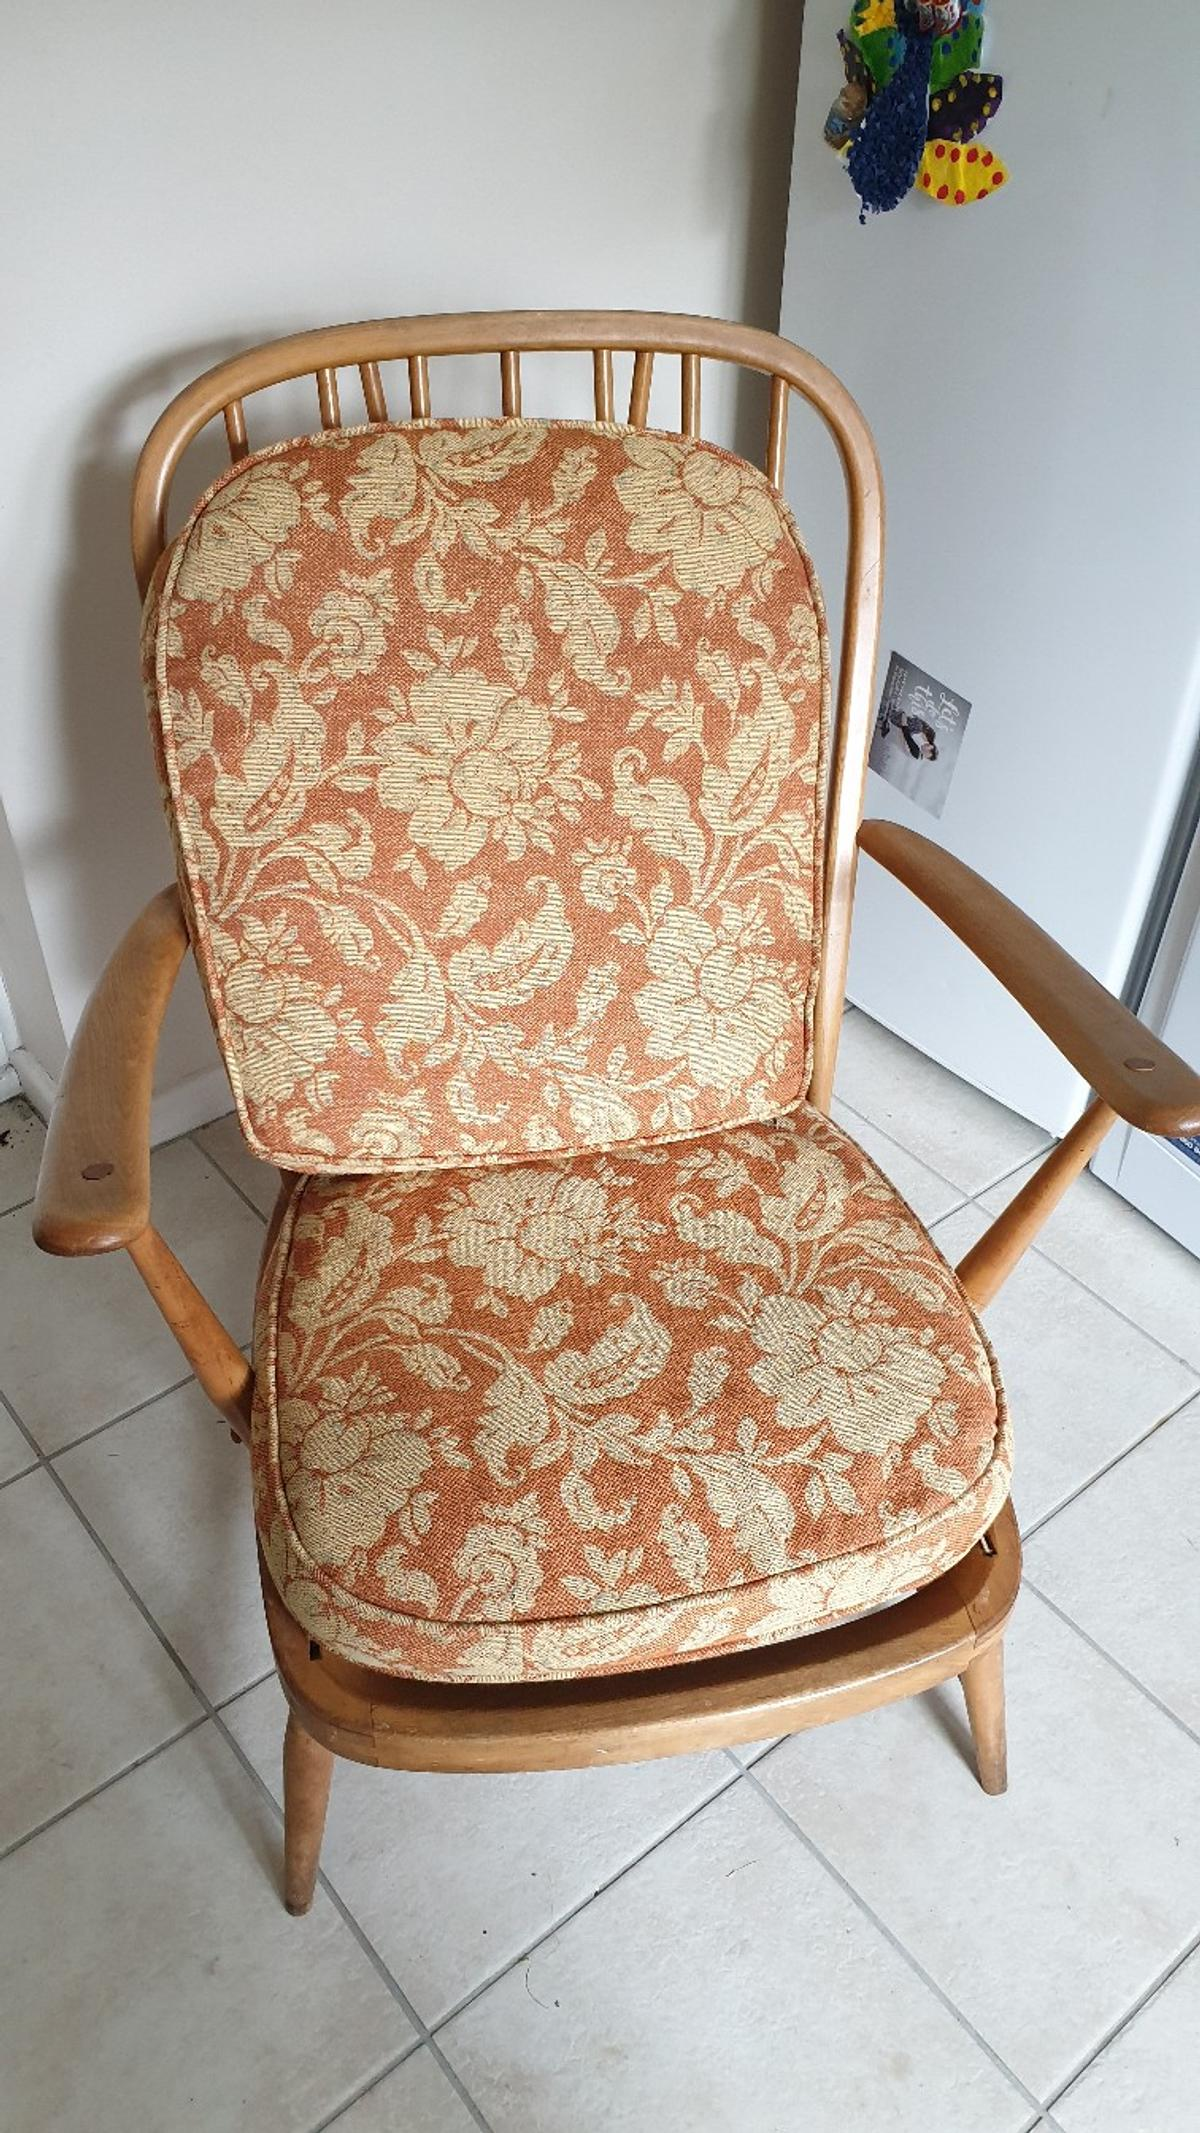 Ercol Armchair in DY8 Dudley for £100.00 for sale | Shpock